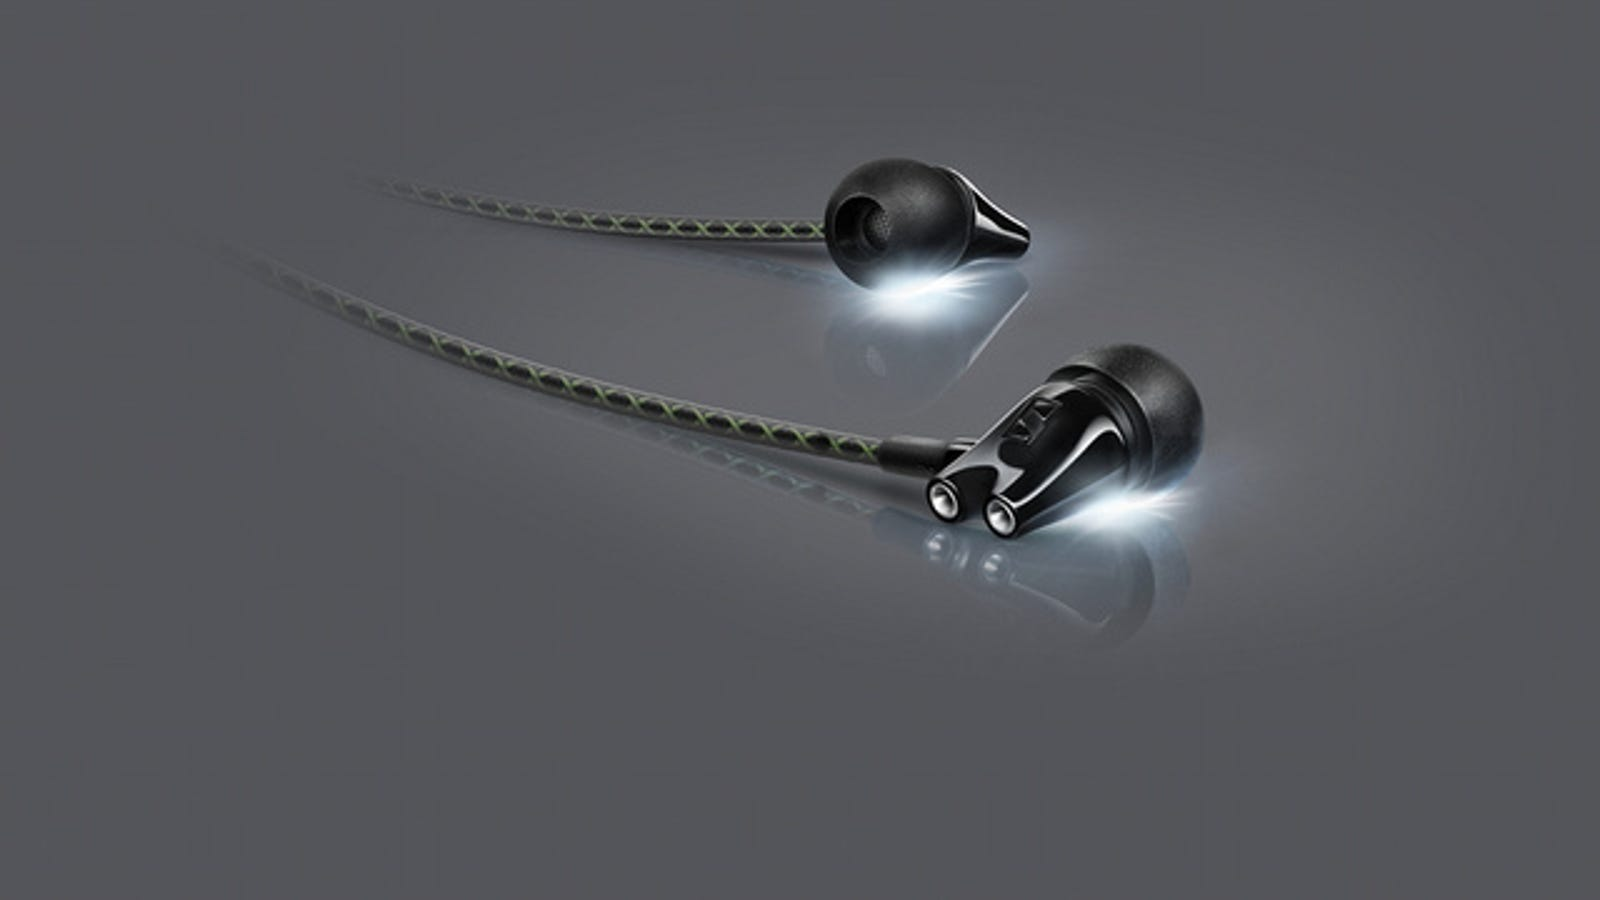 pink samsung earbuds - The Most Intense Ear Buds Sennheiser Has Ever Made